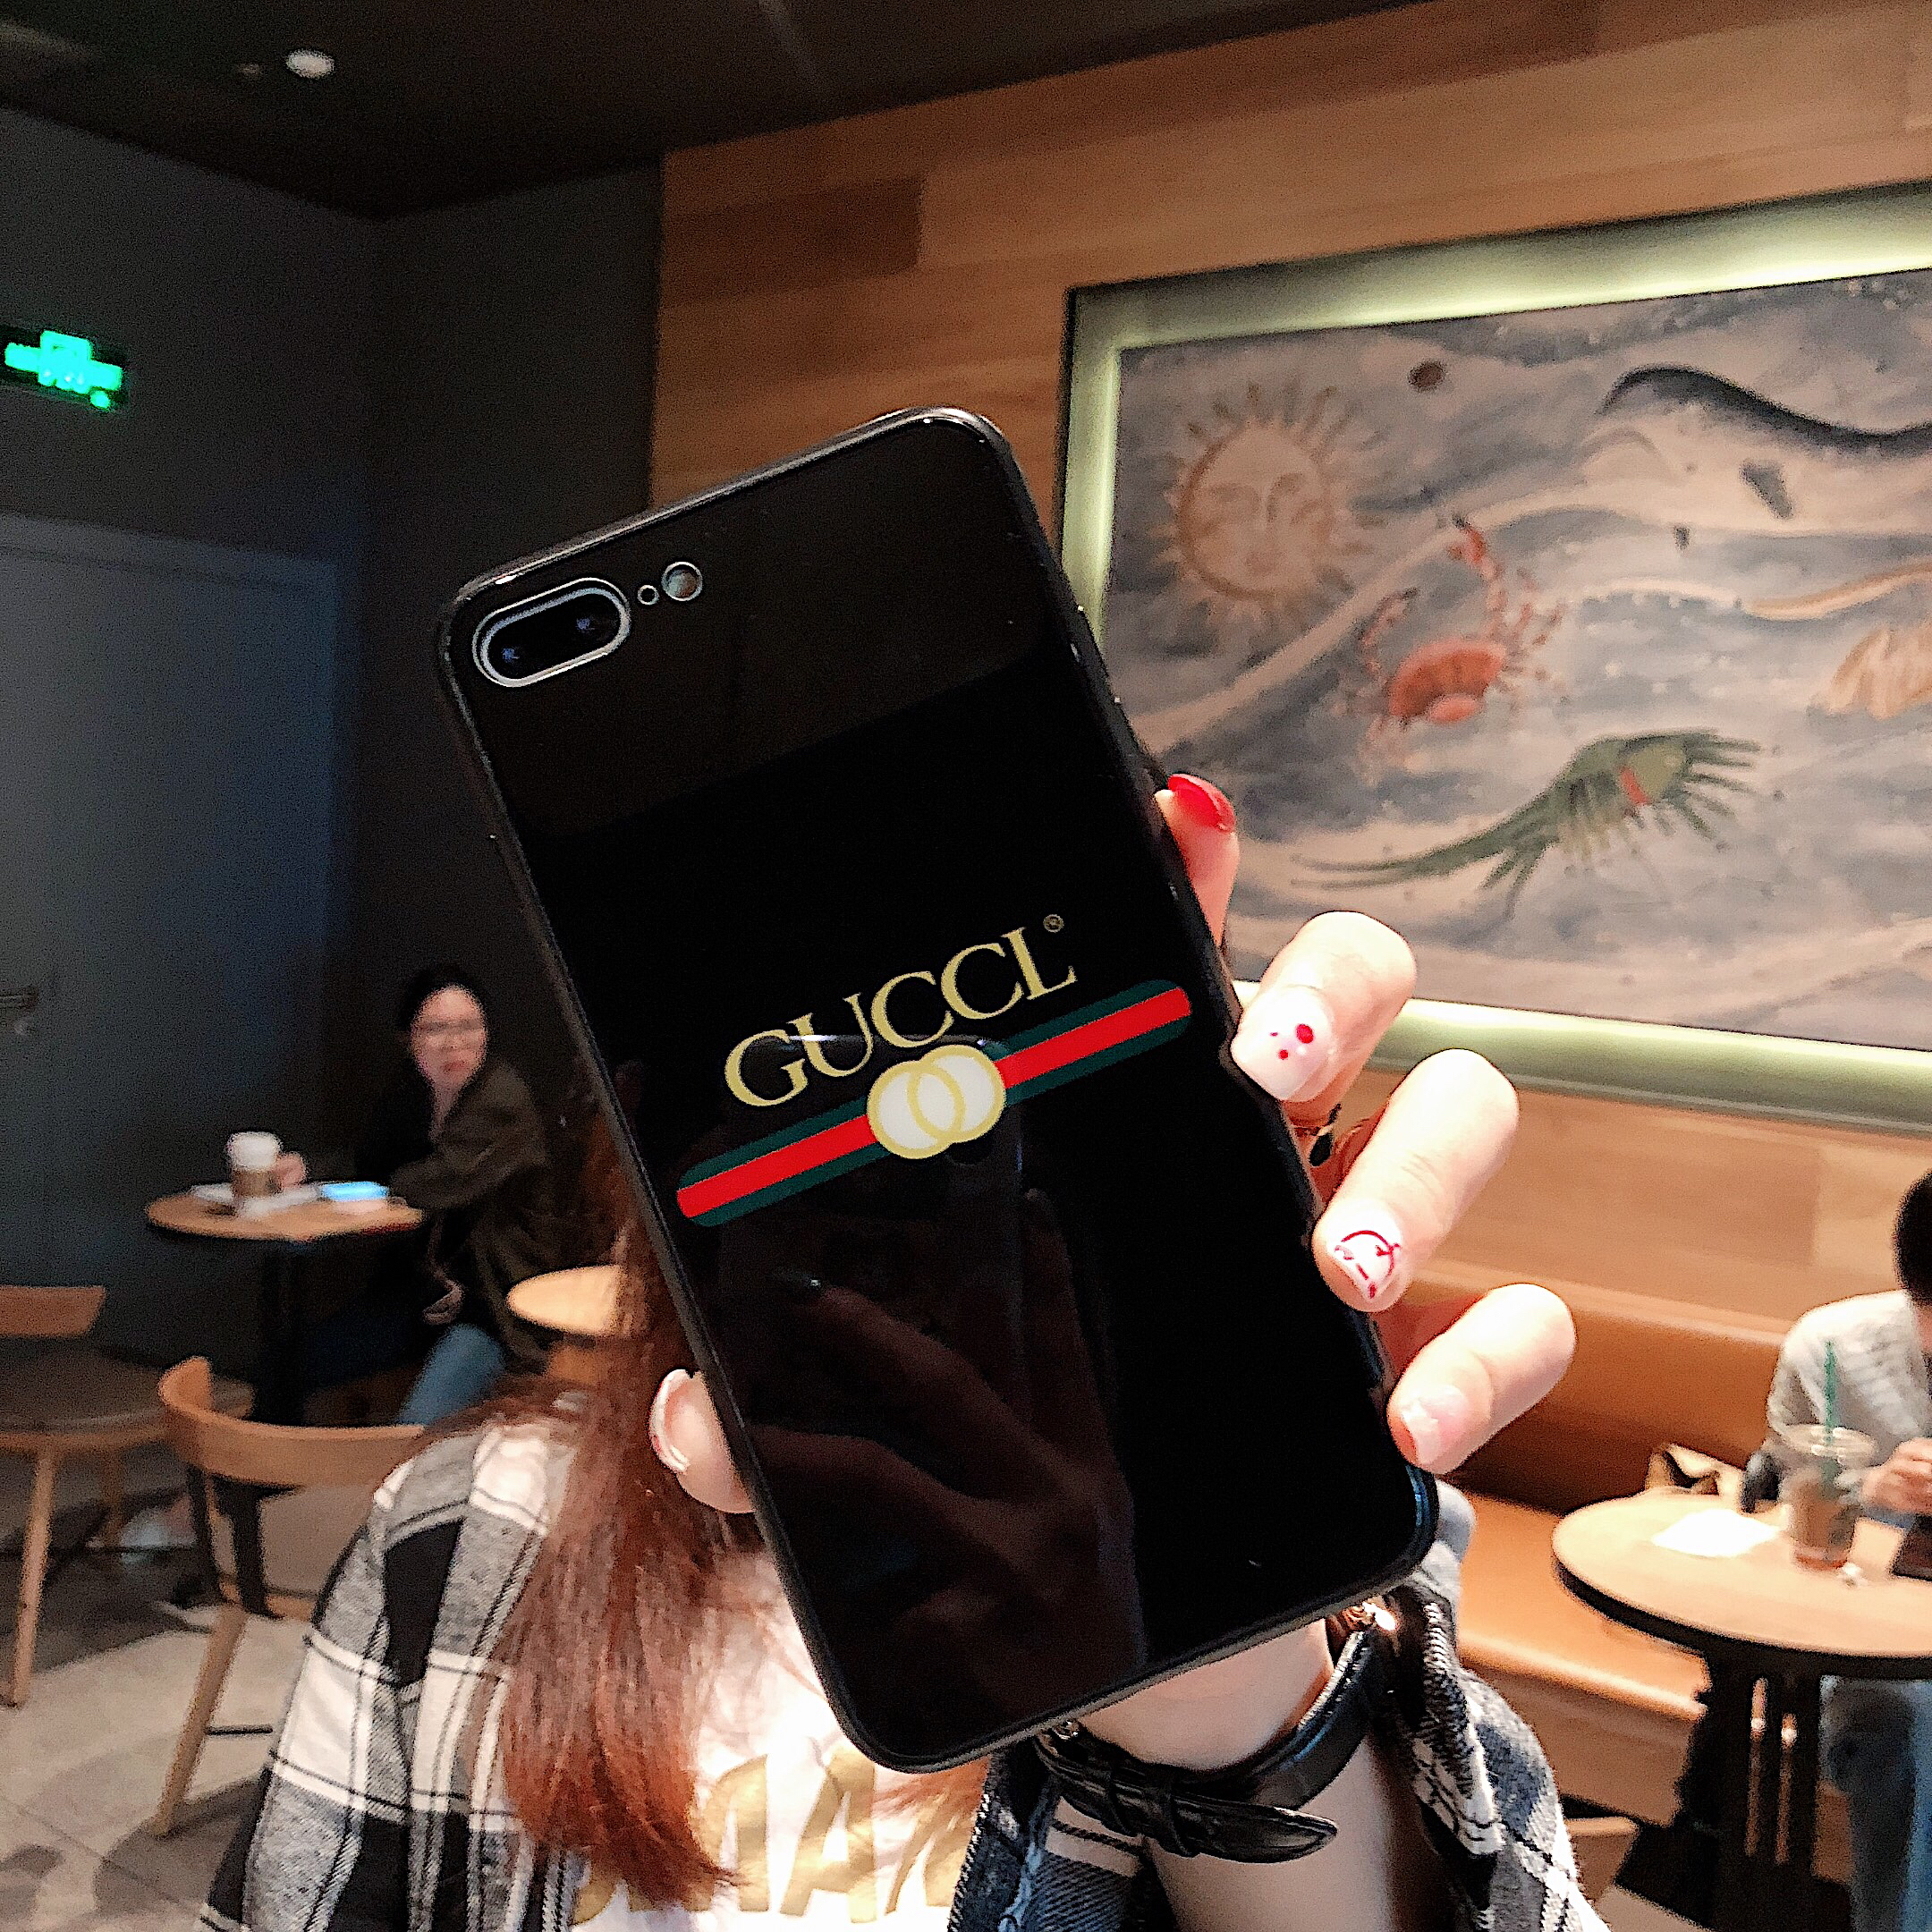 Gucci Icon Phone Case for iPhone6/6S, 6/6S PLUS, 7/8, 7/8plus, X/XS, XR, XS MAX Chic Mirror Full Protection Anti-falling black